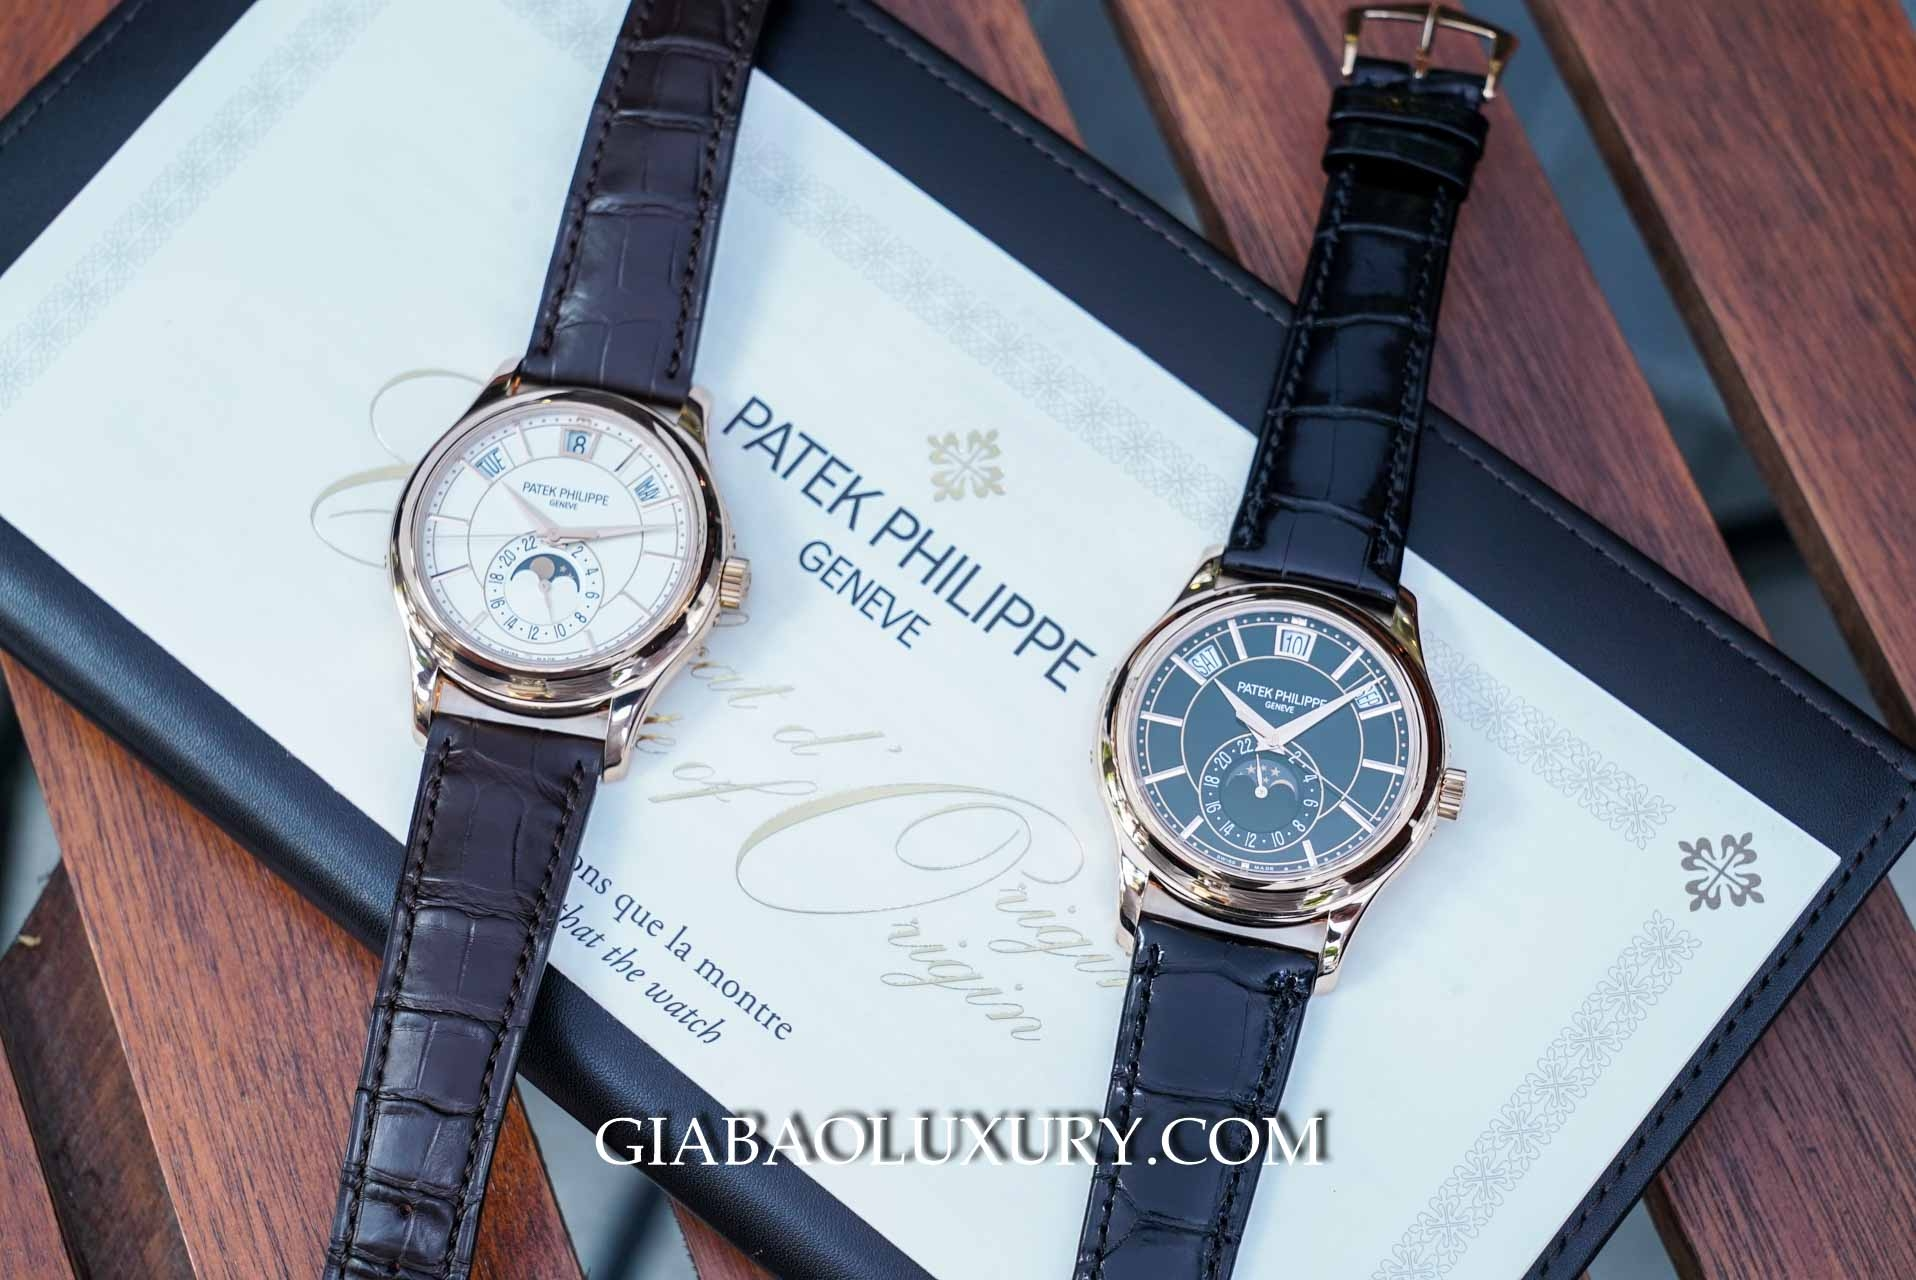 Đồng Hồ Patek Philippe Complications 5205R-001 Mặt Trắng